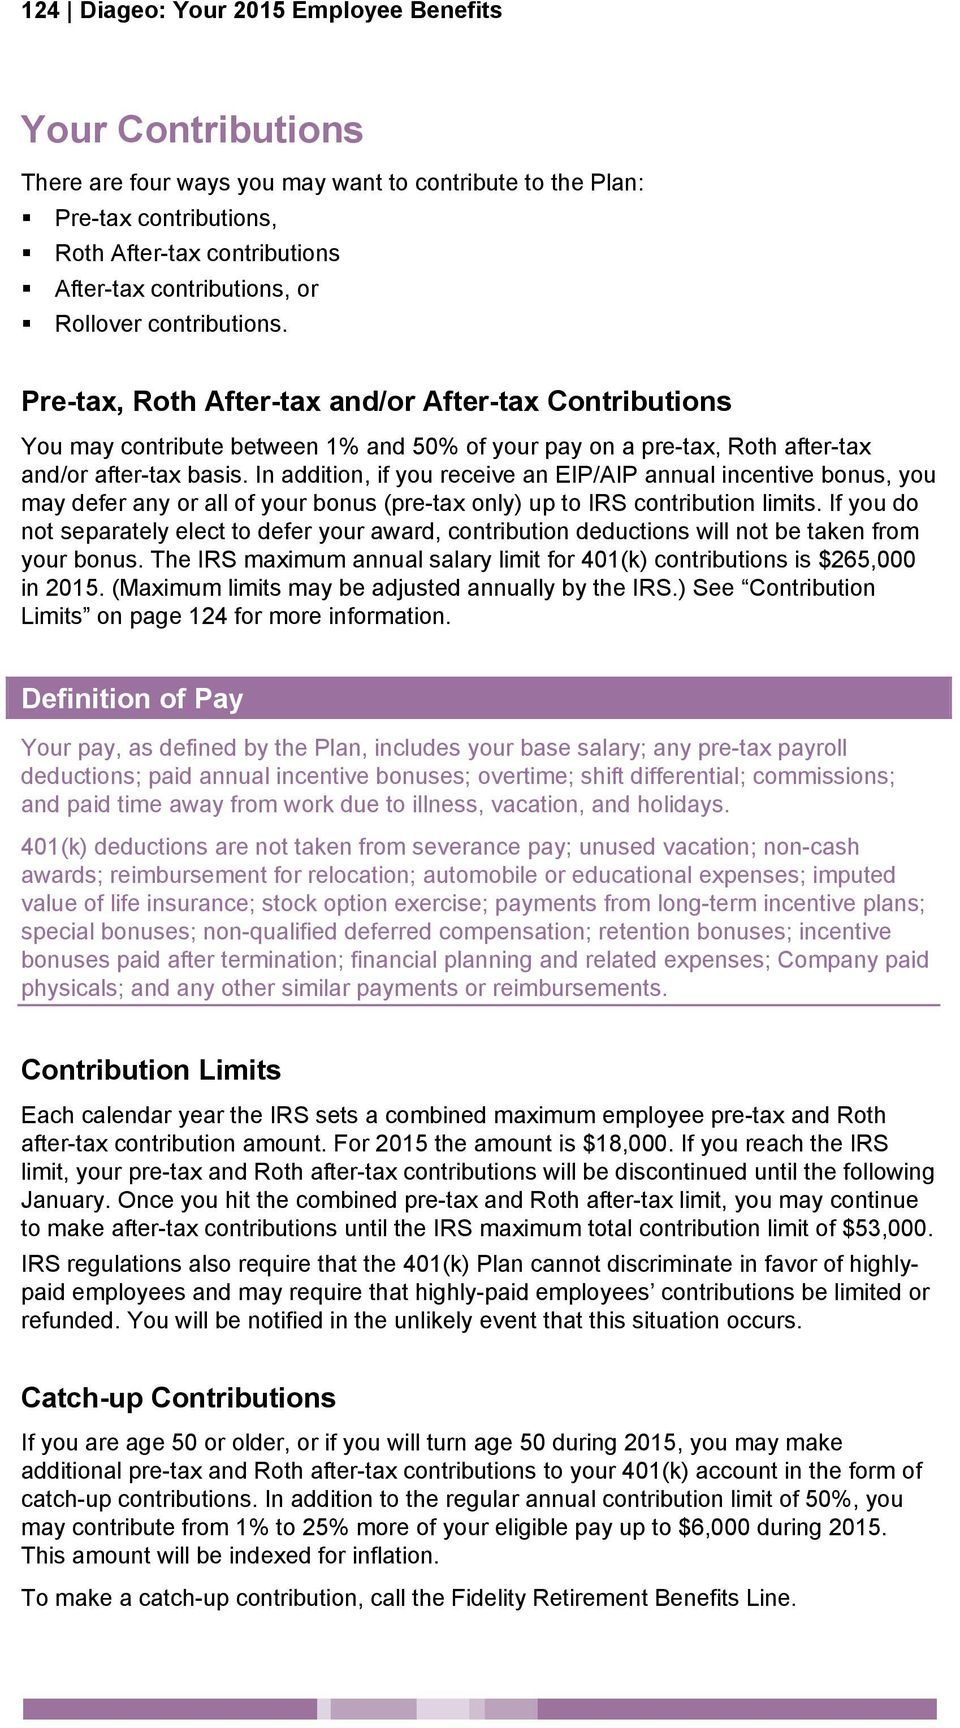 401(k) Plan IN THIS SECTION SEE PAGE  Diageo: Your 2015